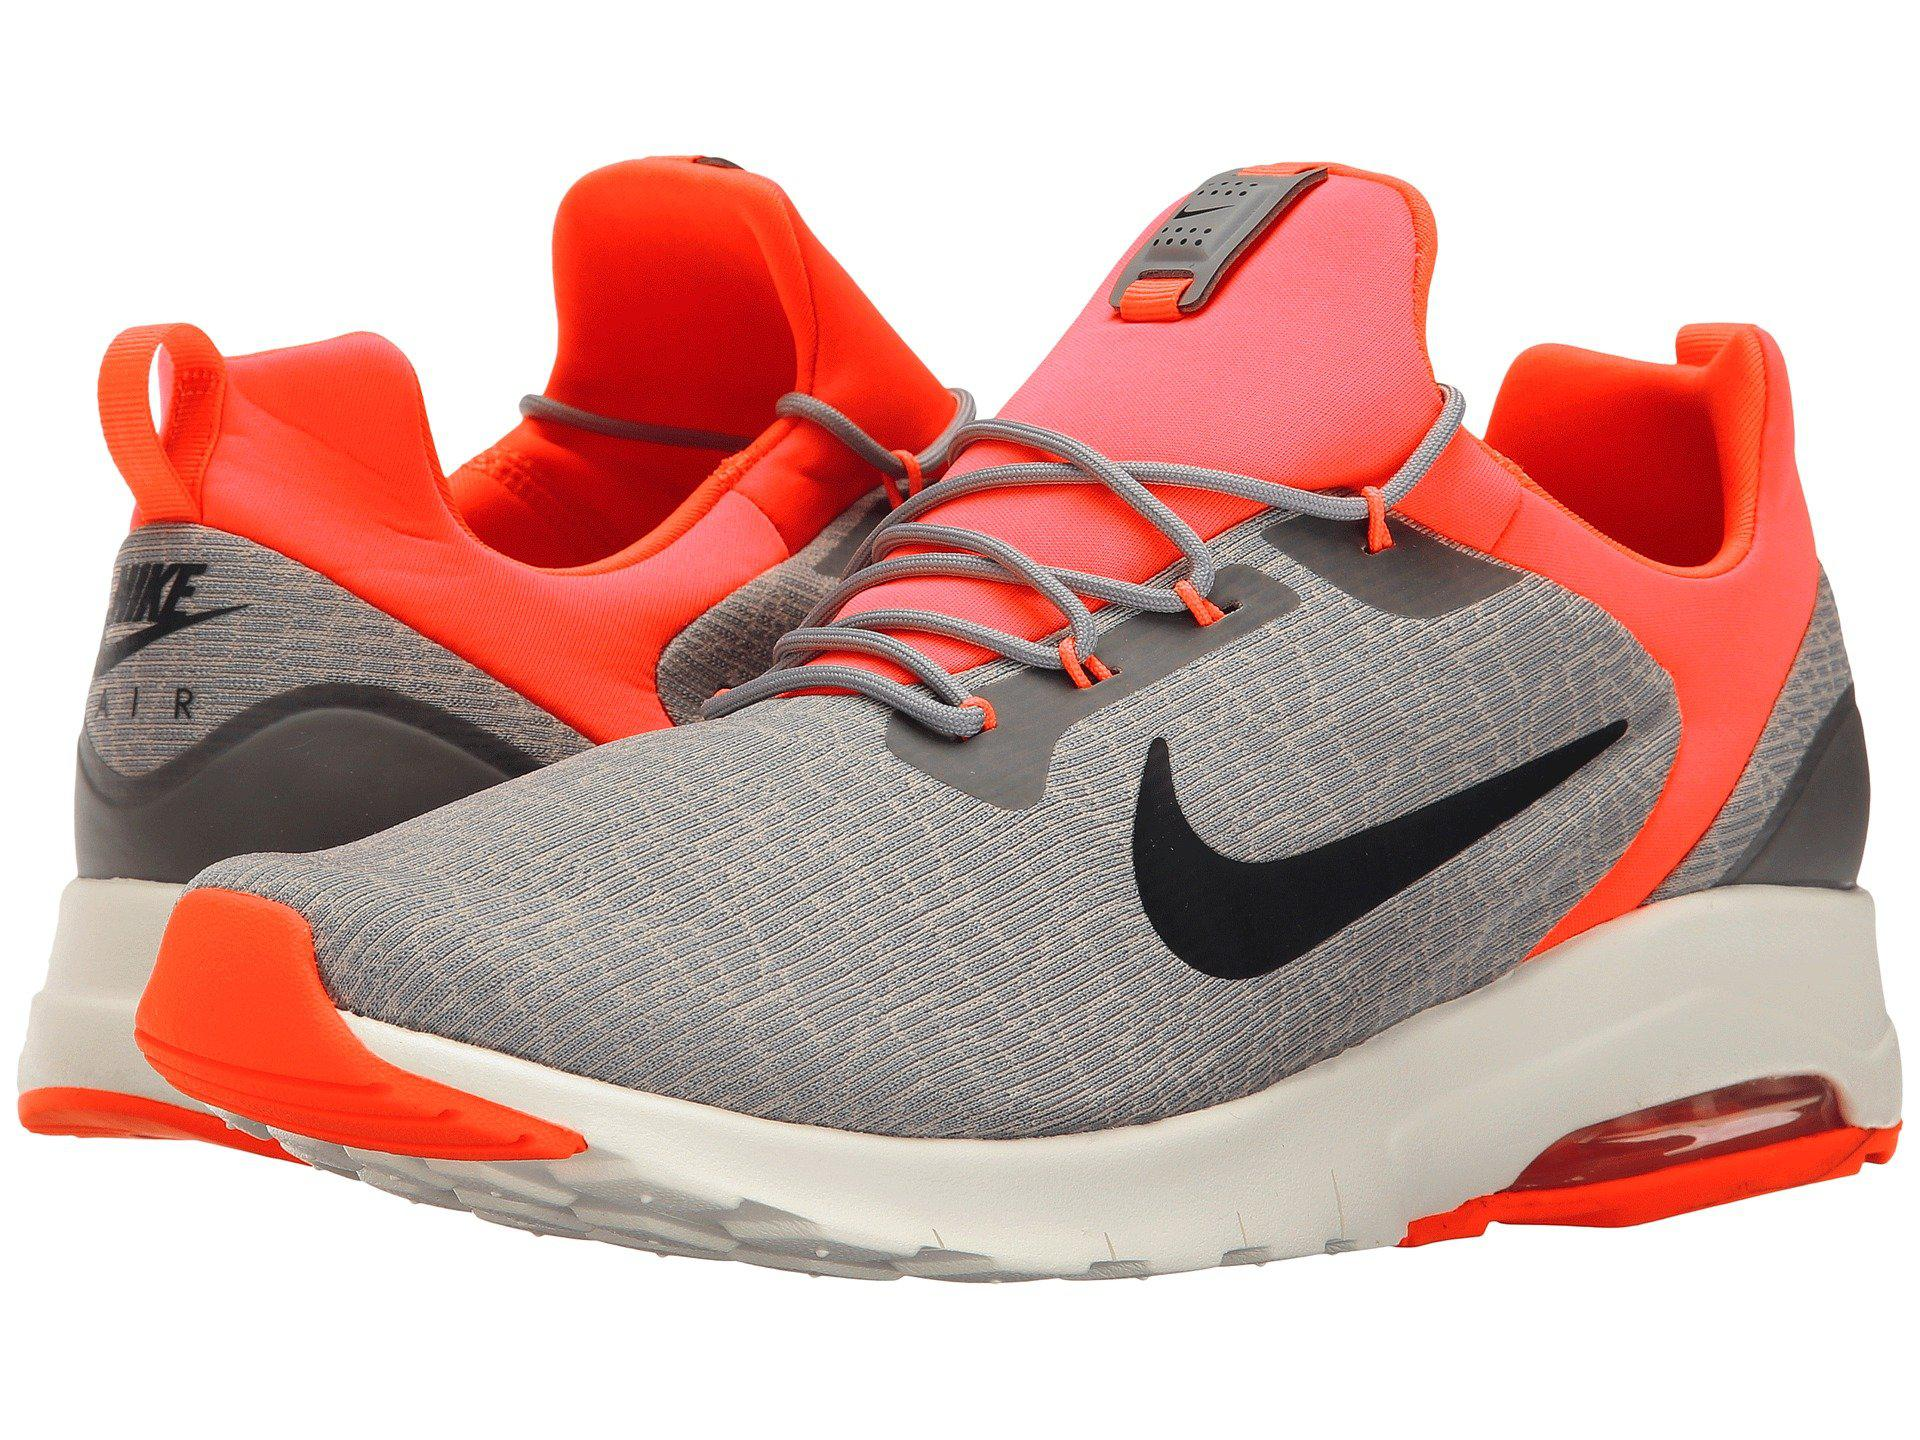 Lyst - Nike Air Max Motion Racer in Red for Men 46b8e6d2d